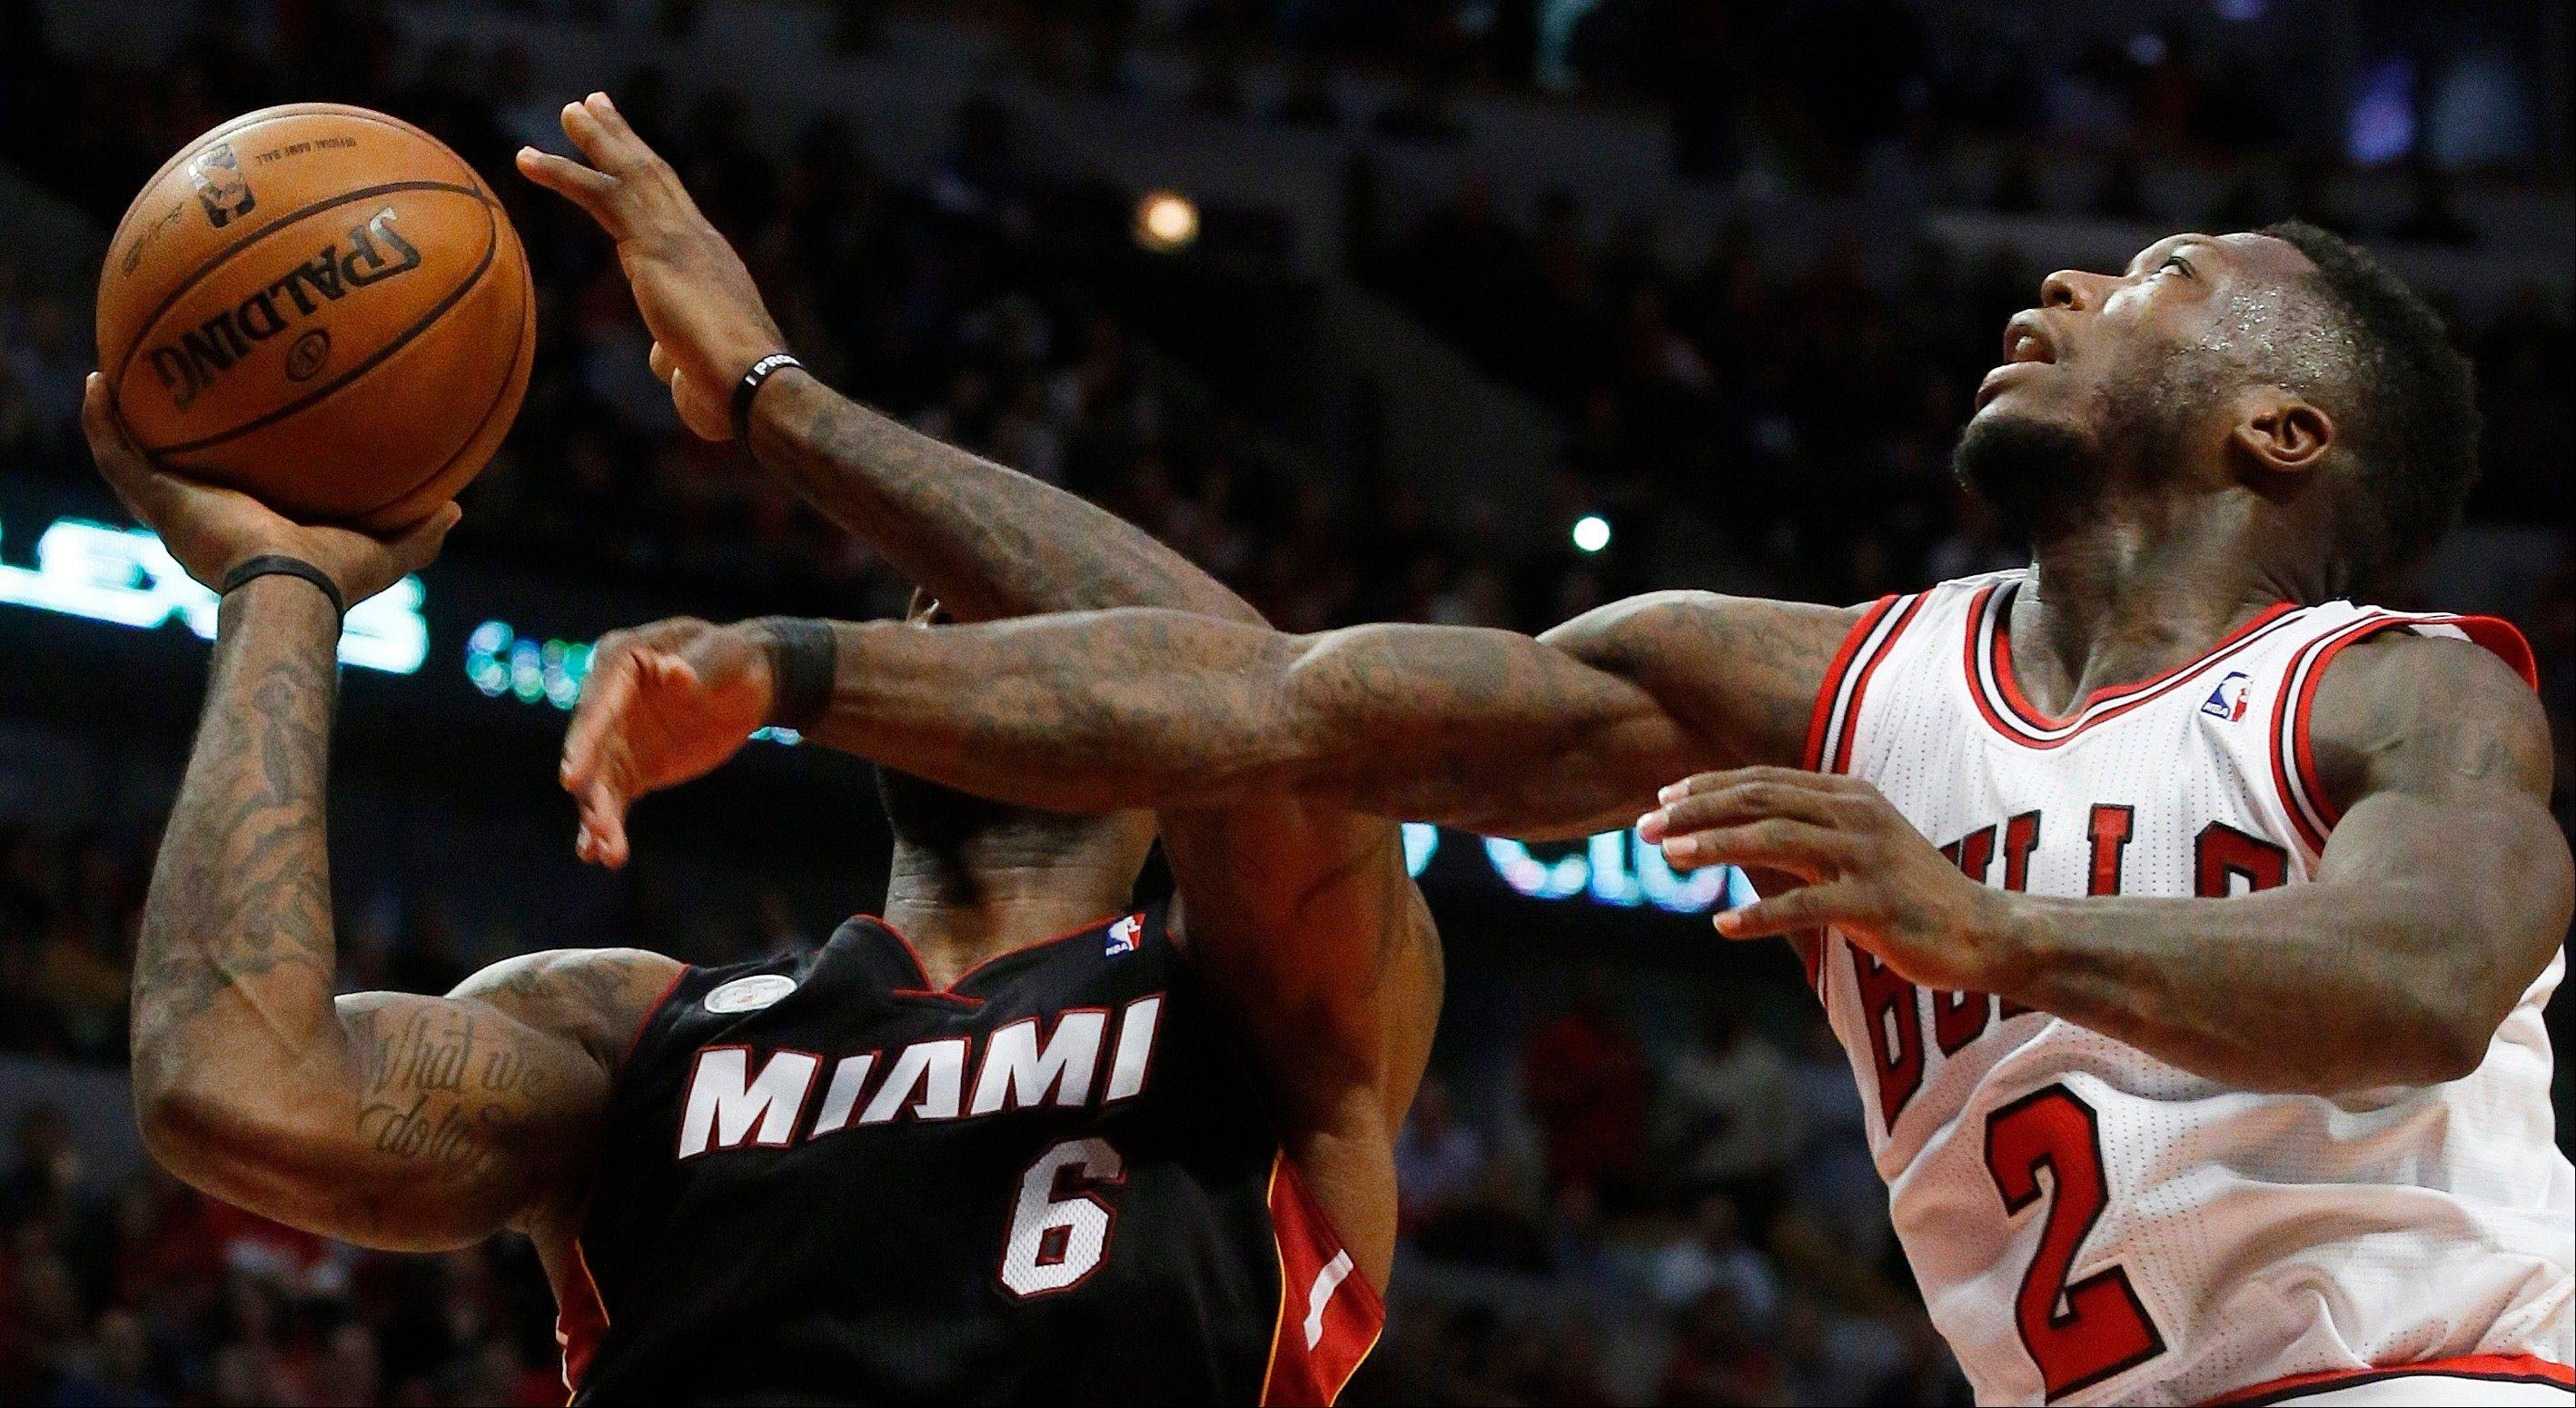 Miami Heat small forward LeBron James (6) heads to the hoop under the defense of Chicago Bulls point guard Nate Robinson (2) during the first half of Game 3 of an NBA basketball playoffs Eastern Conference semifinal on Friday, May 10, 2013, in Chicago. (AP Photo/Charles Rex Arbogast)